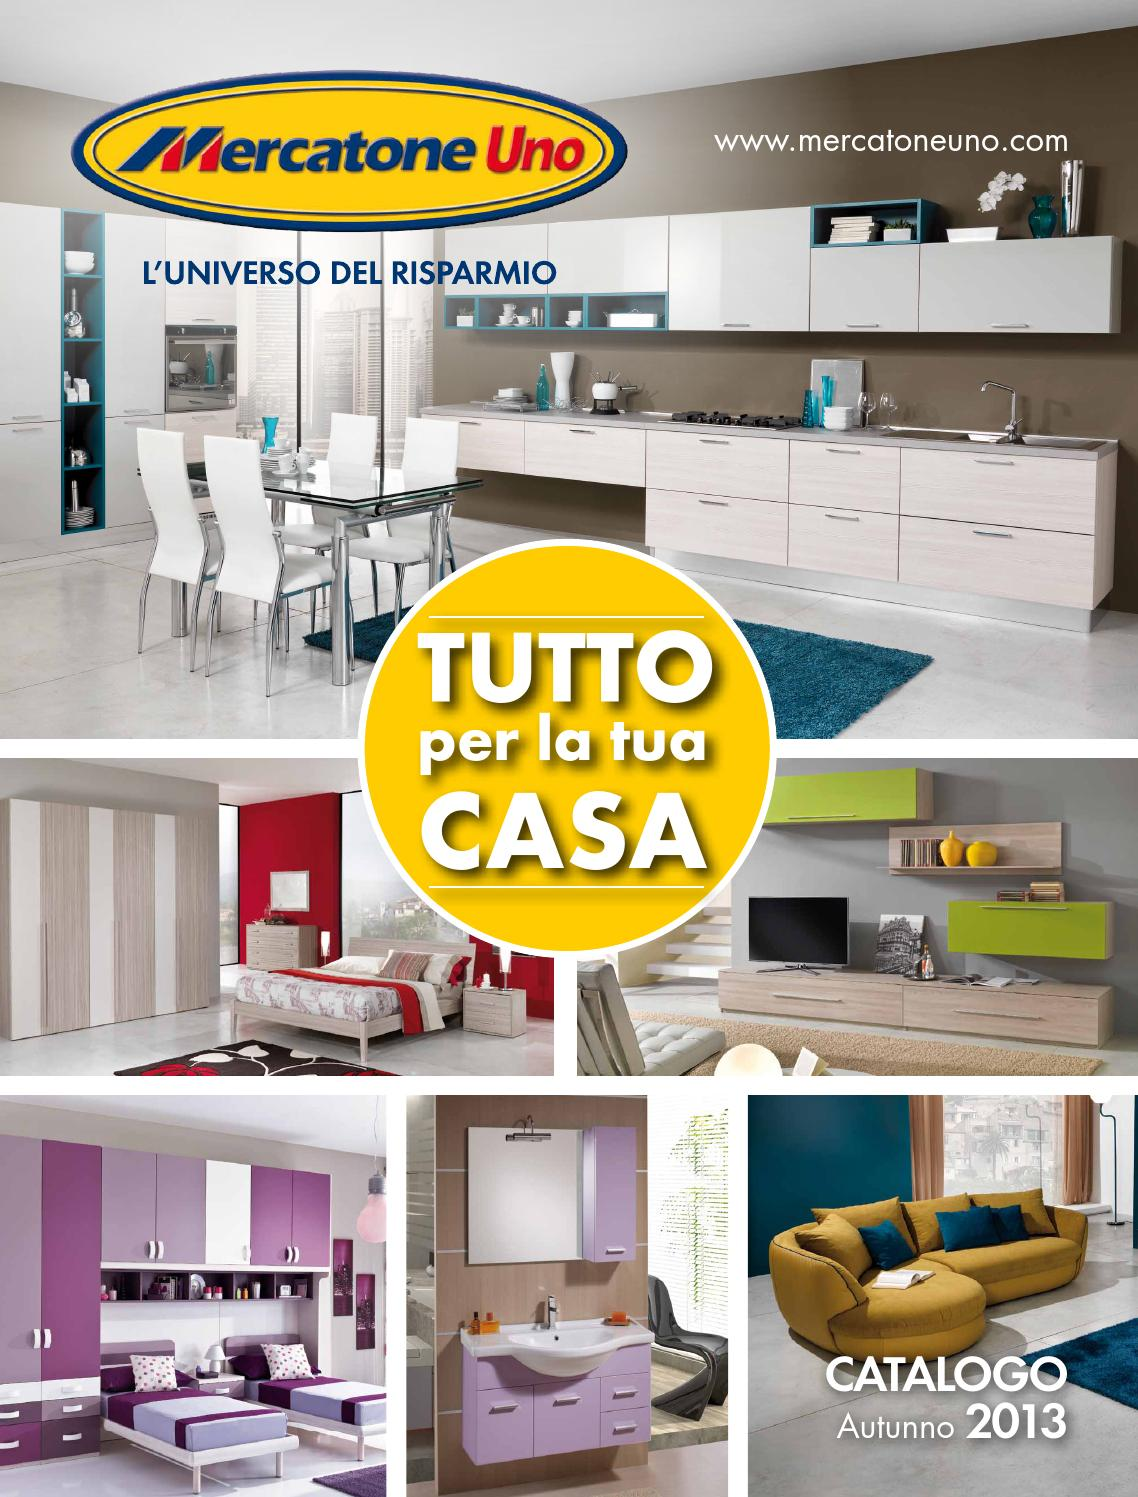 Catalogo 2013 Eva Arredamenti by Mobil Clam S.r.l. - issuu